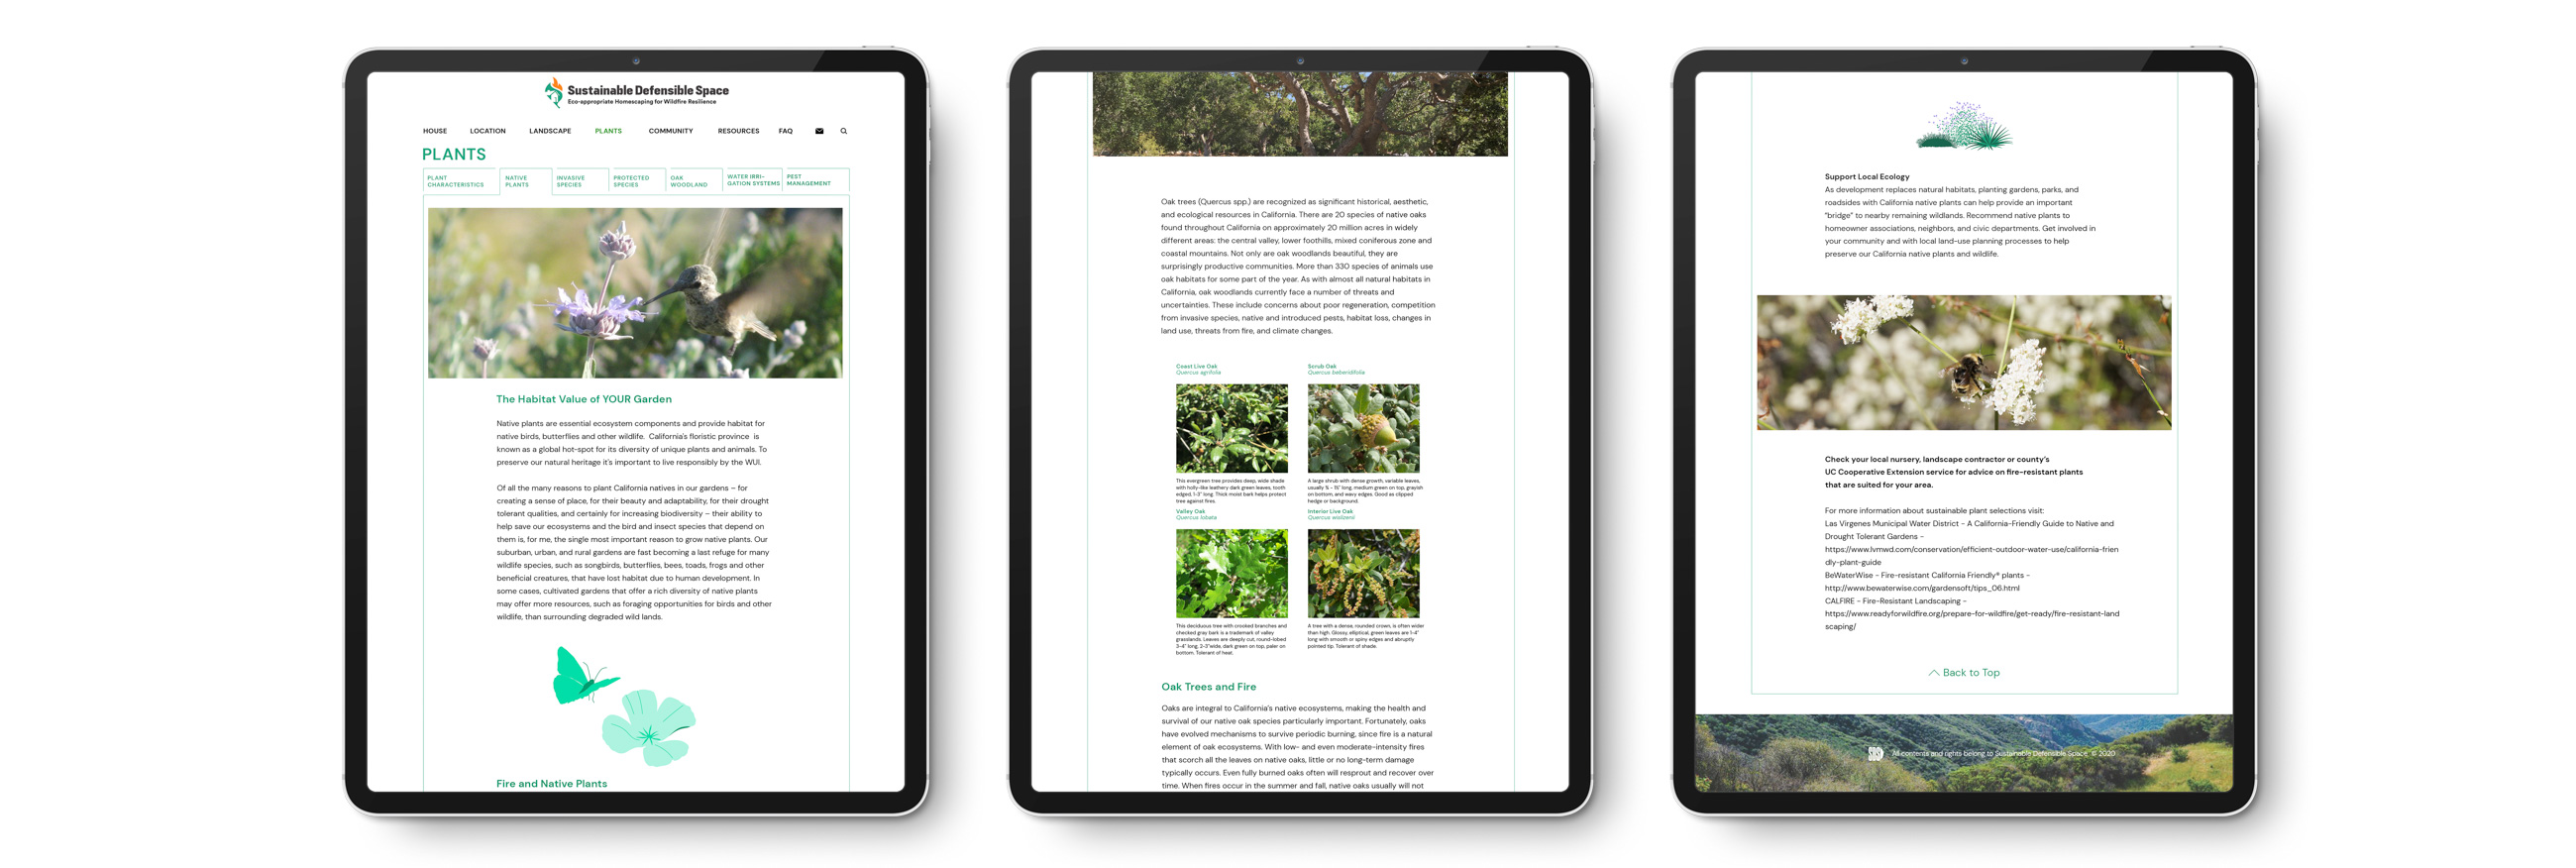 3 iPads showing different webpages from the Sustainable Defensible Space website